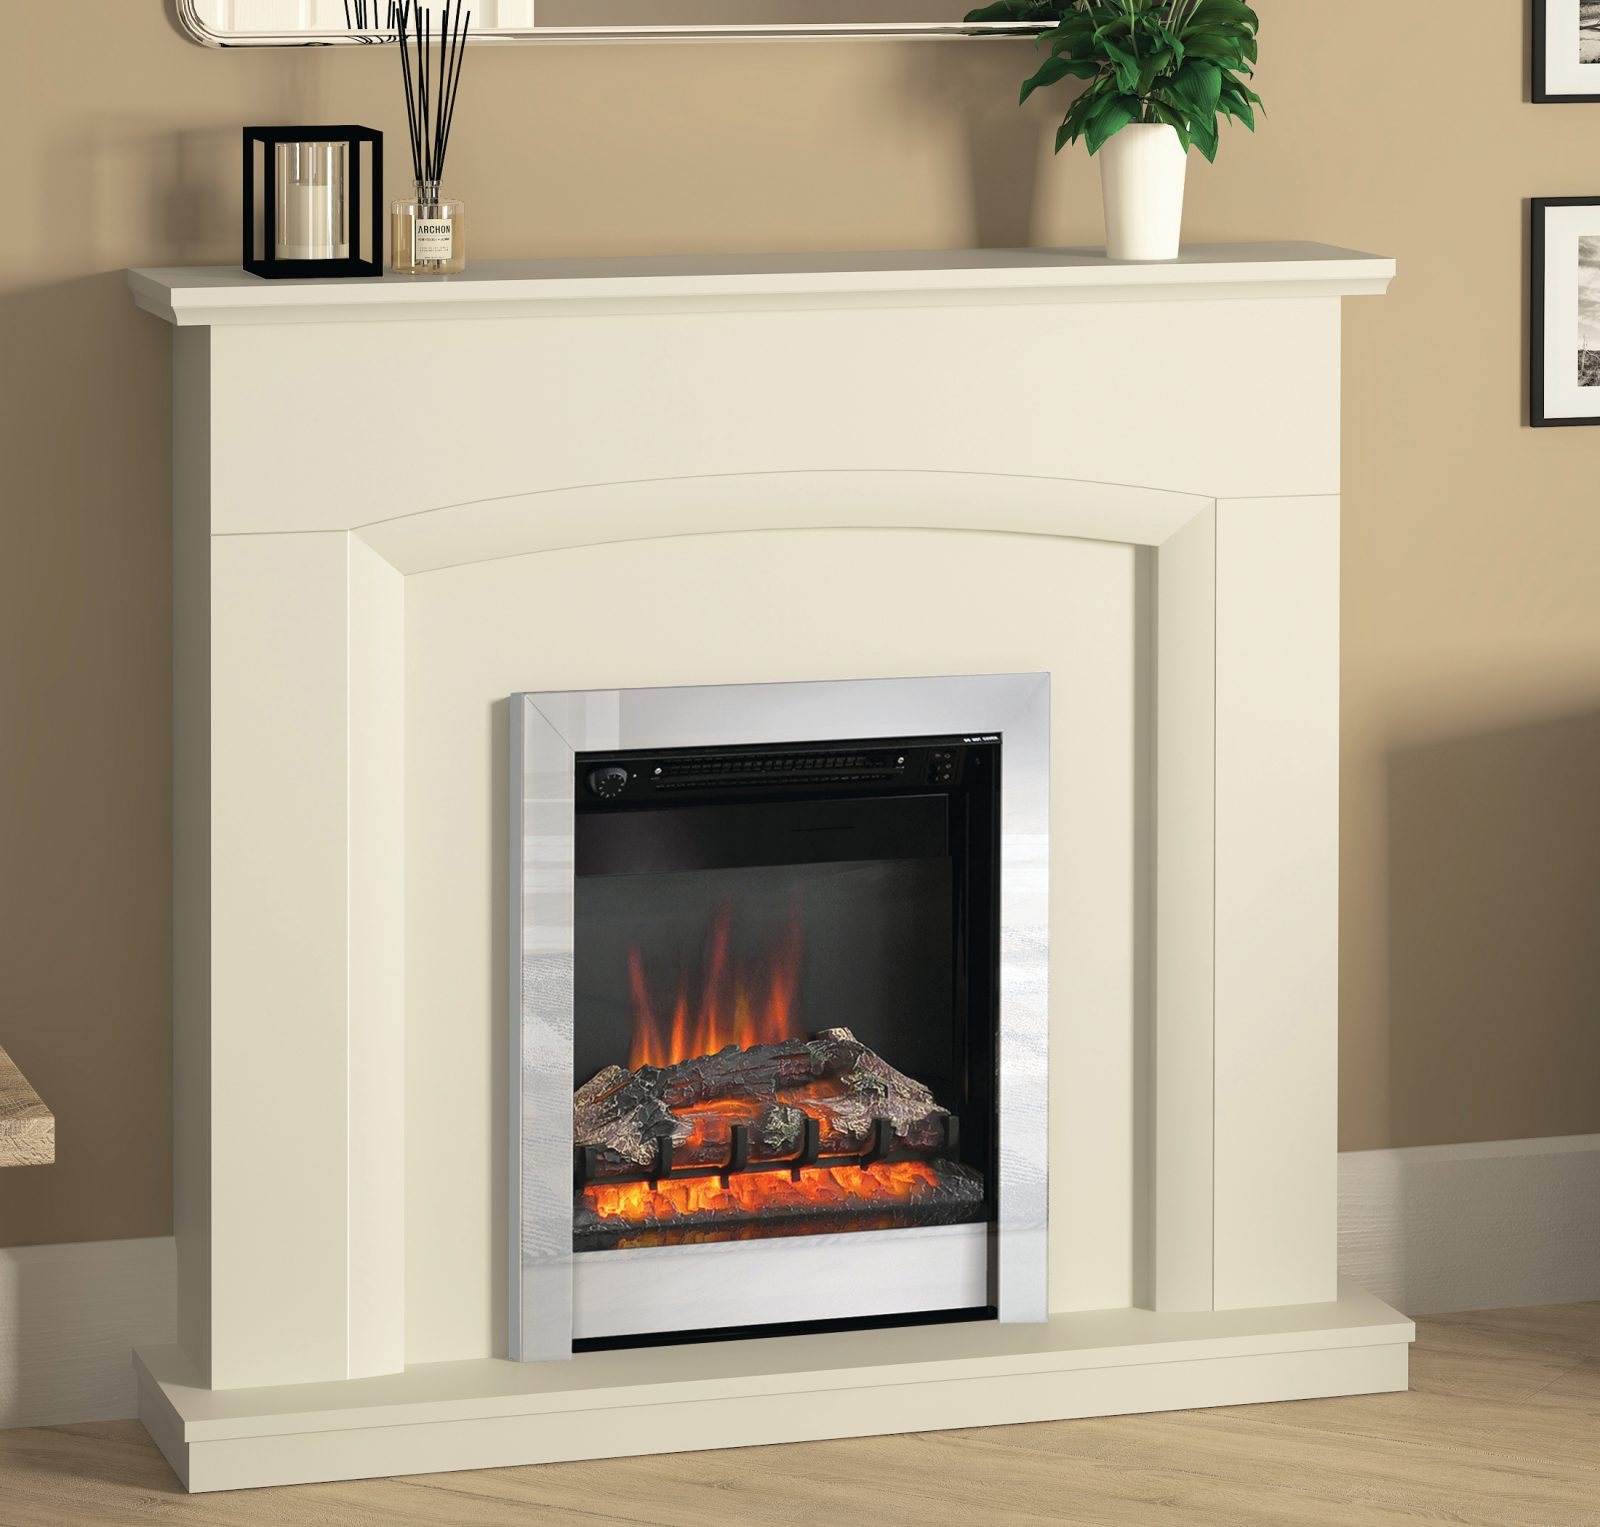 """46"""" Hayden fireplace in Soft White finish chrome Finish Electric Fire - Simply Stoves"""